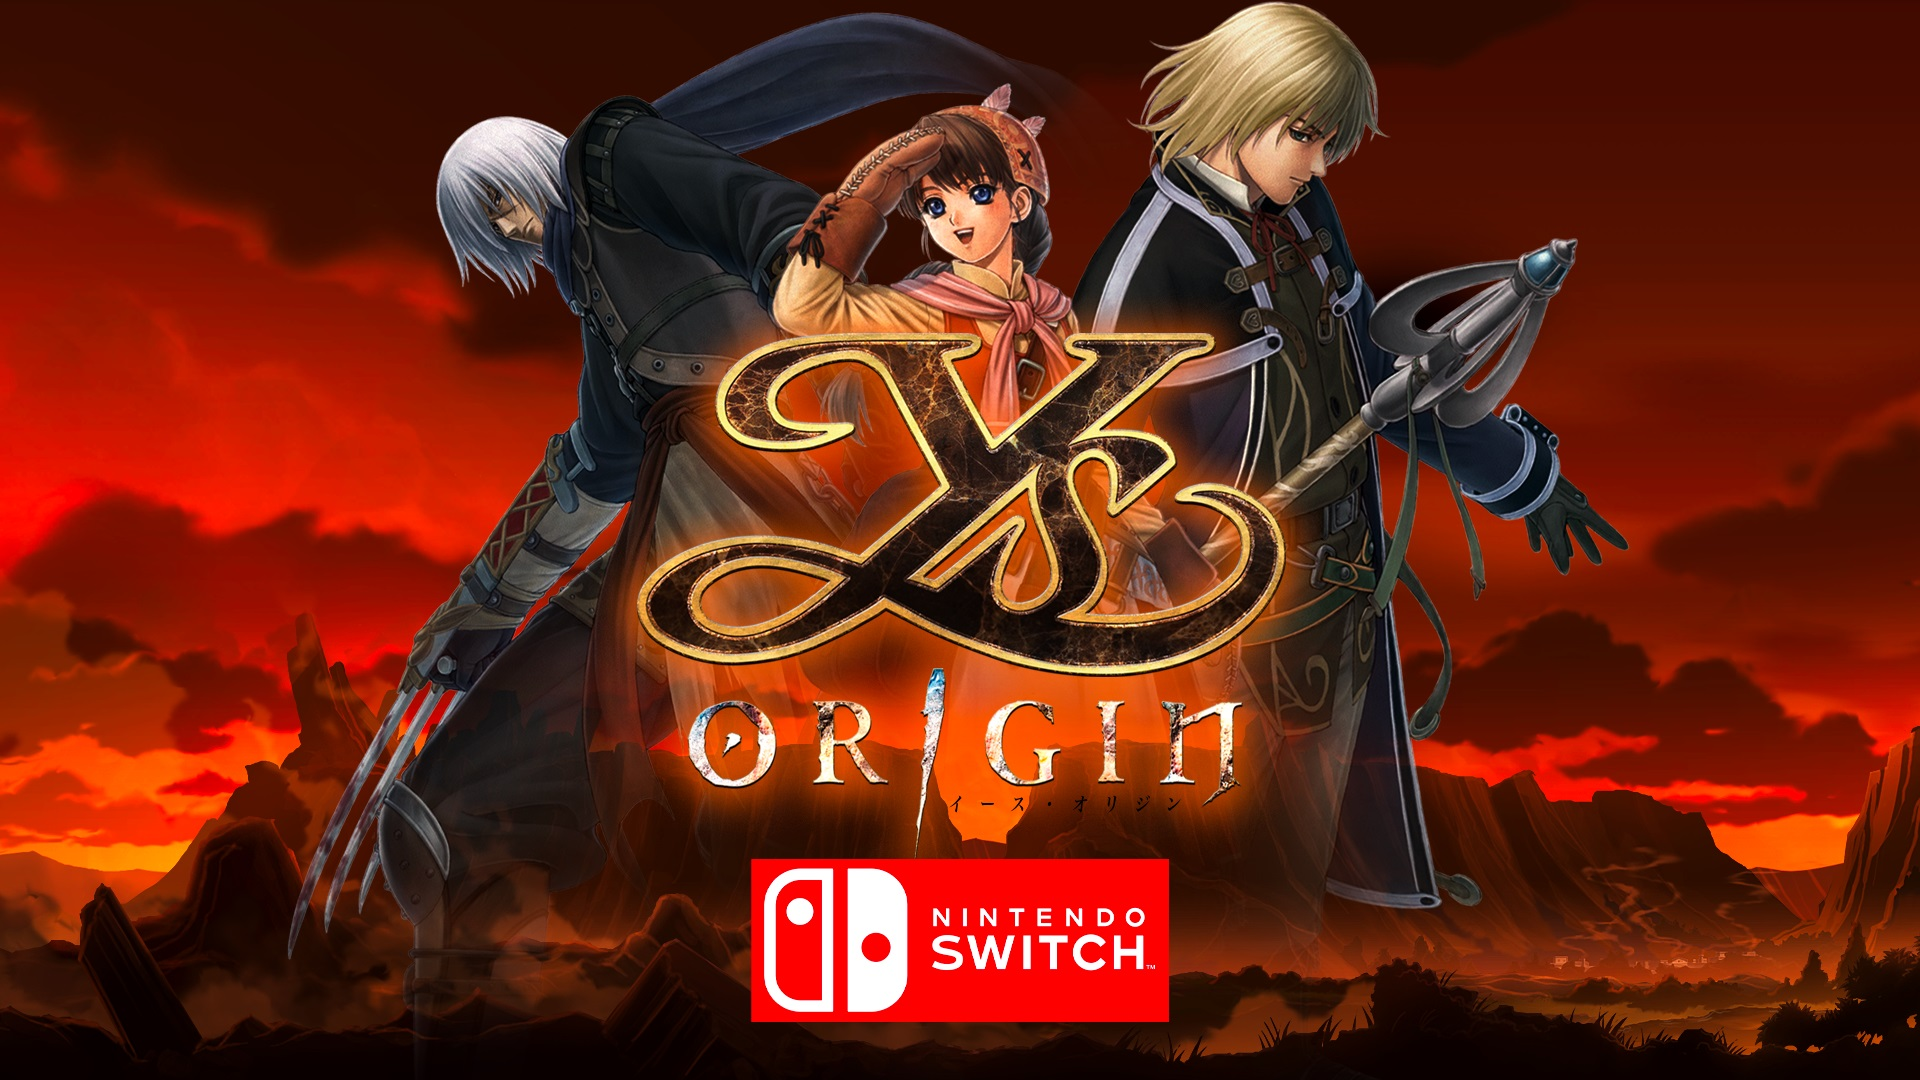 Ys Origin is reaching Nintendo Switch later this year!